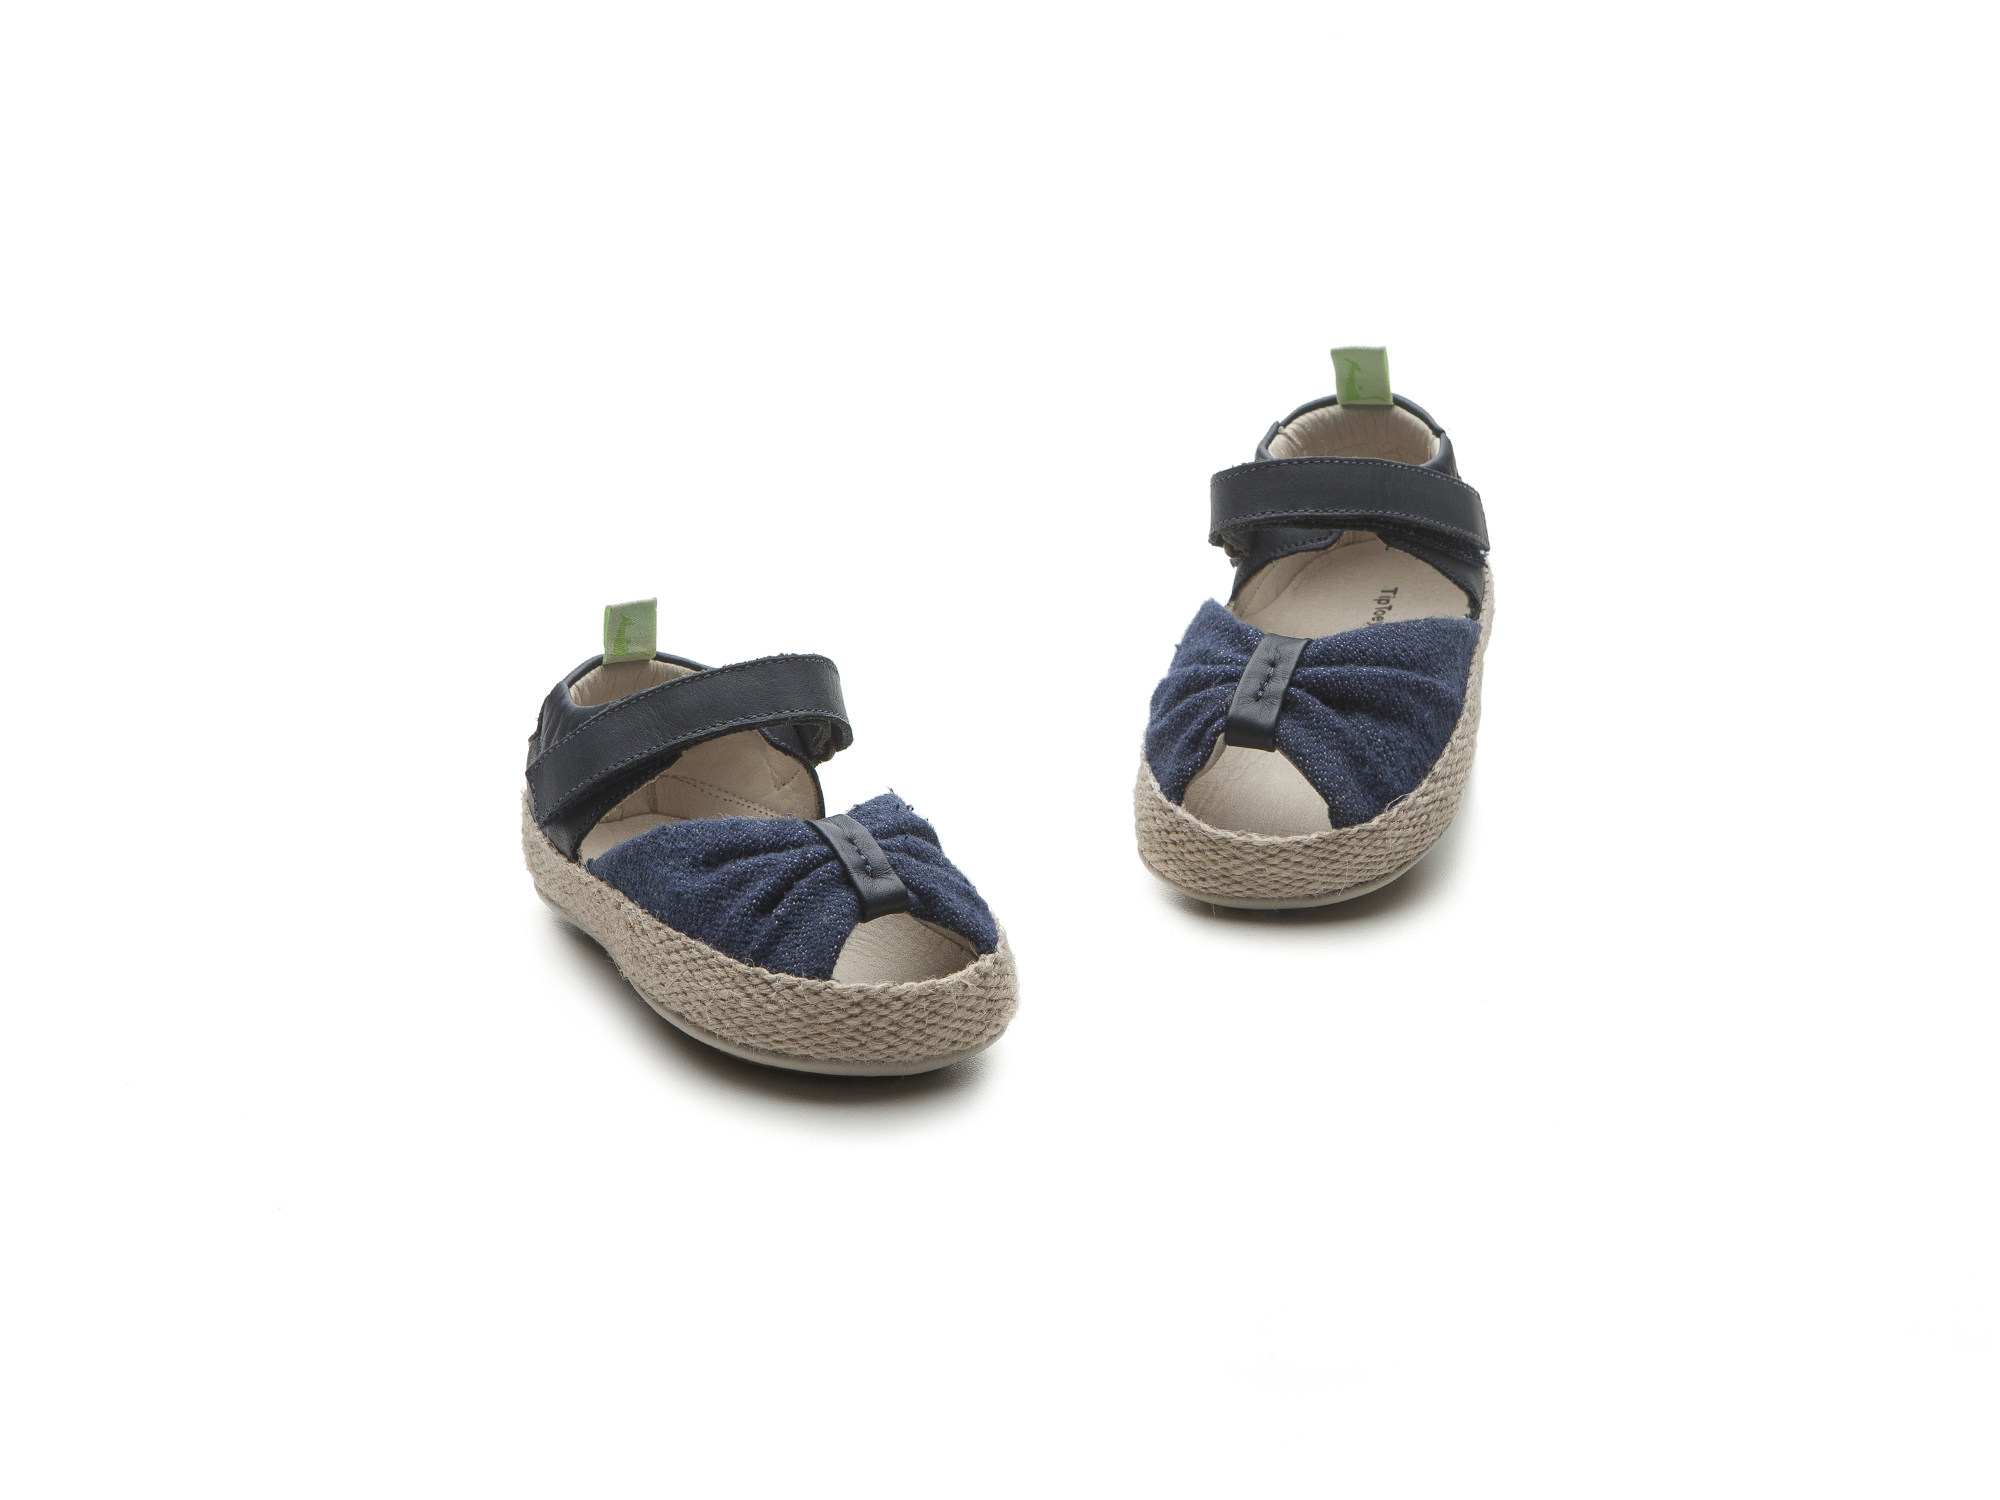 Sandália Coasty Jeans Canvas/ Navy Baby 0 à 2 anos - 1